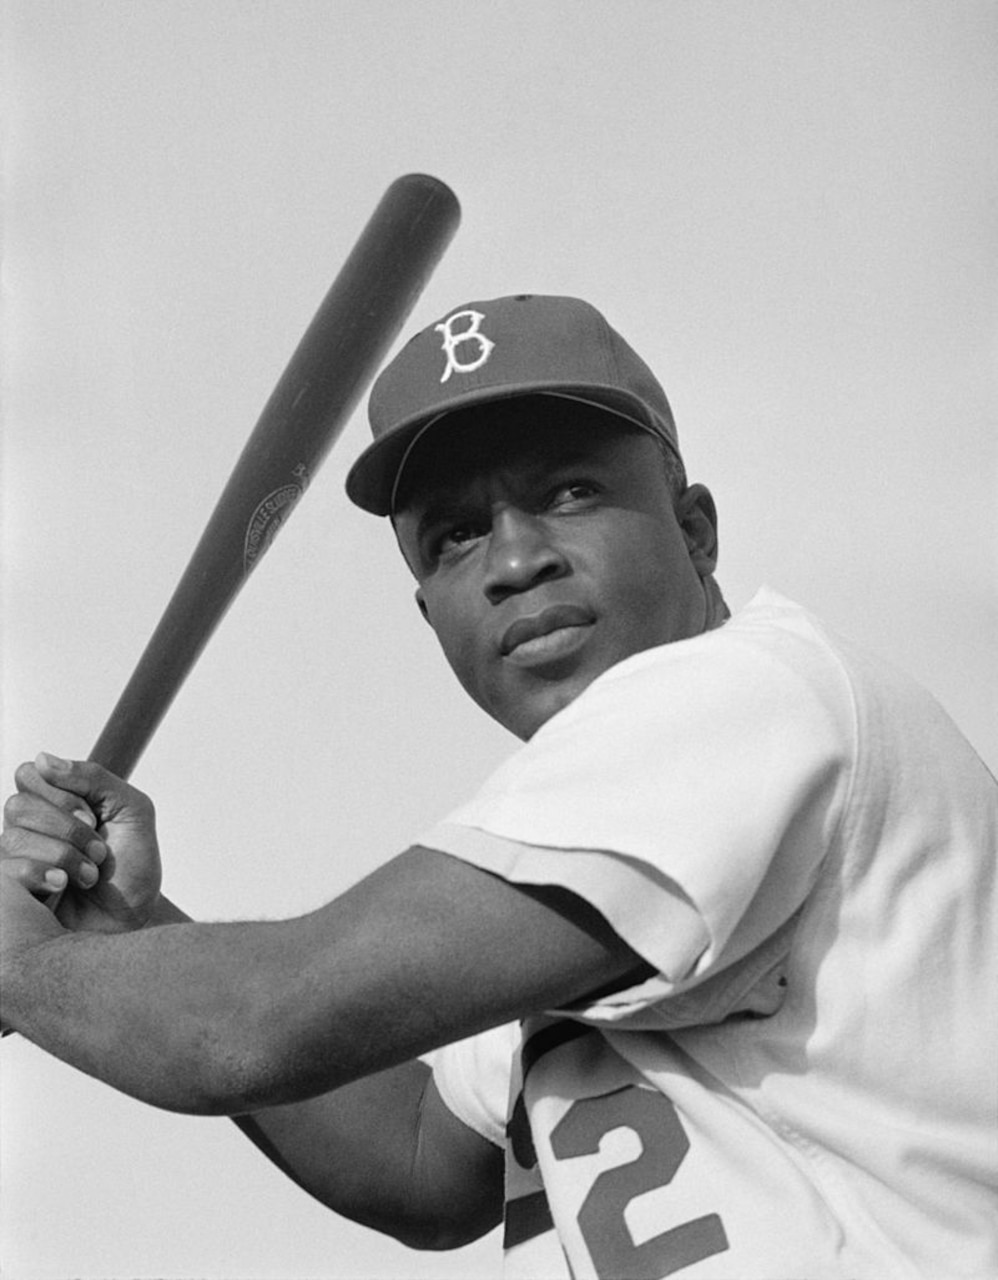 A baseball player, holding a bat, poses for a photo.